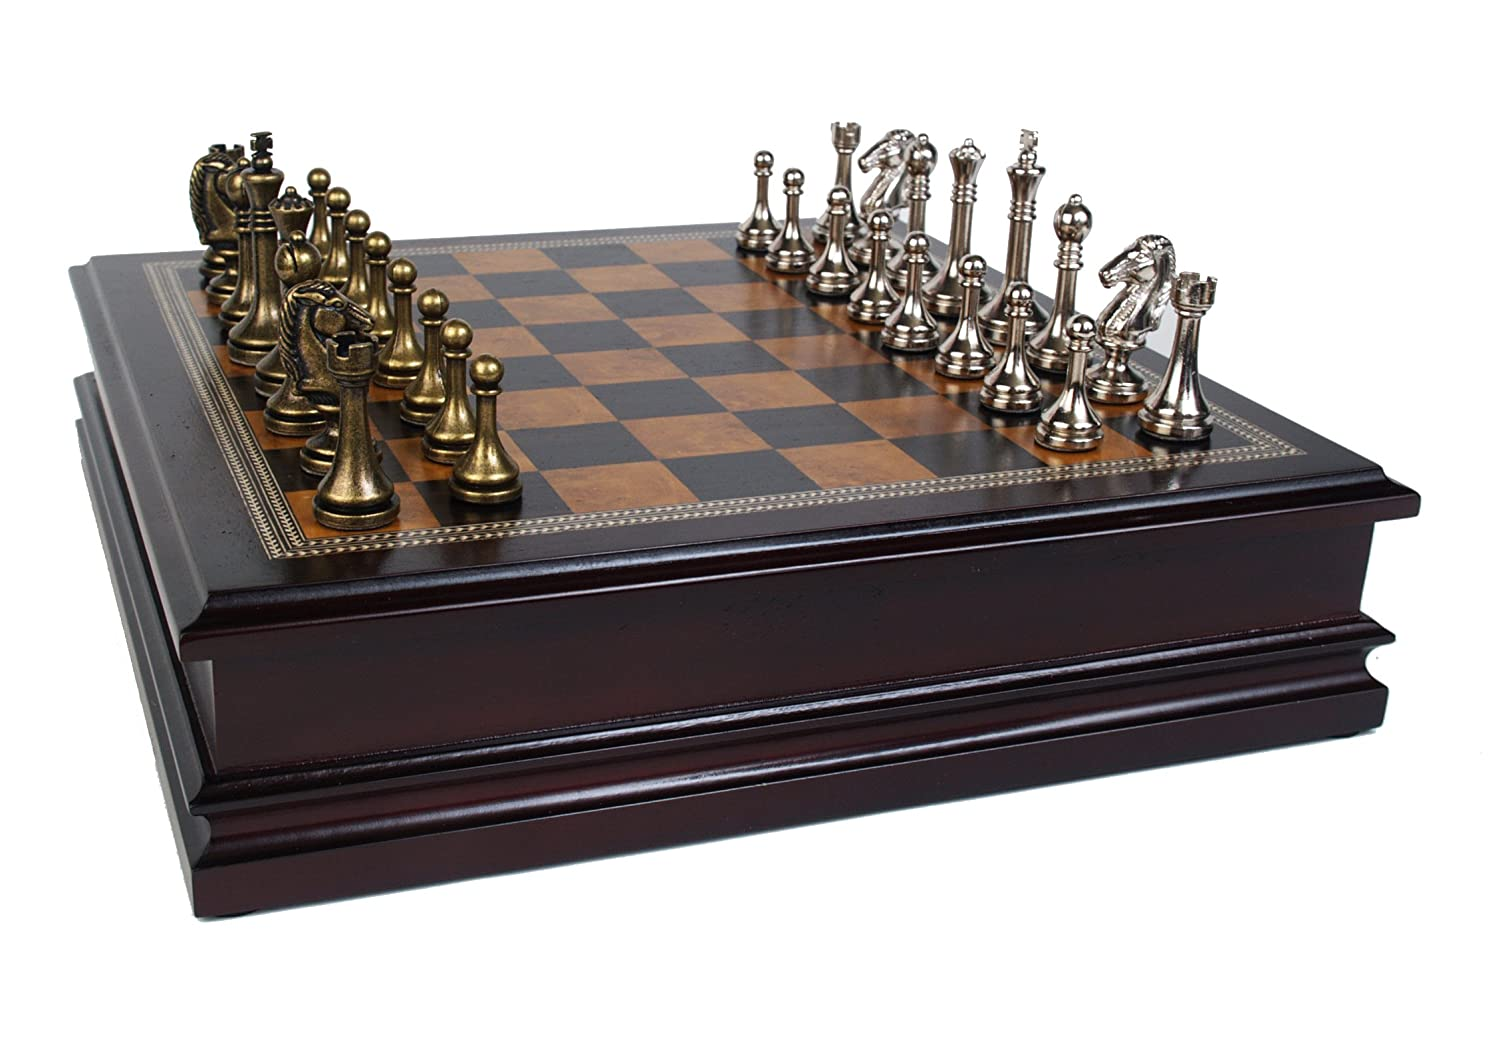 Amazon.com: Classic Game Collection Metal Chess Set With Deluxe Wood ...  Amazon Com Classic Game Collection Metal Chess Set With Deluxe Wood